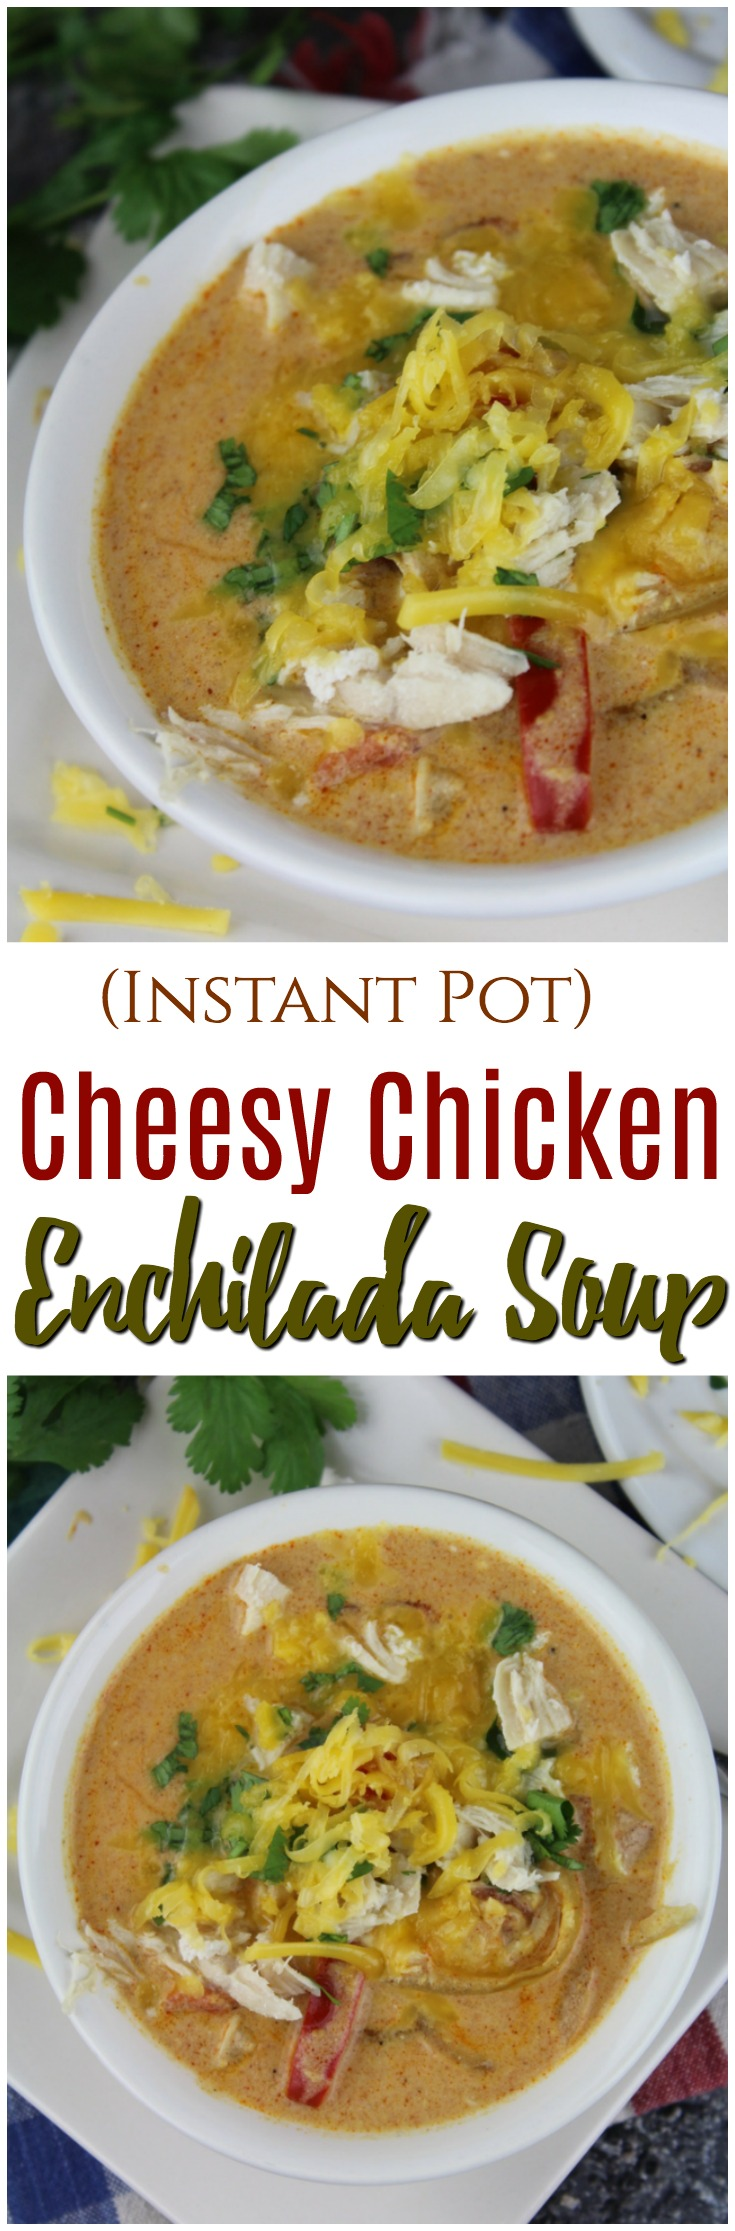 This Instant Pot Cheesy Chicken Enchilada Soup is a quick and easy recipe for a deliciously cheesy and hearty soup that everyone will love.